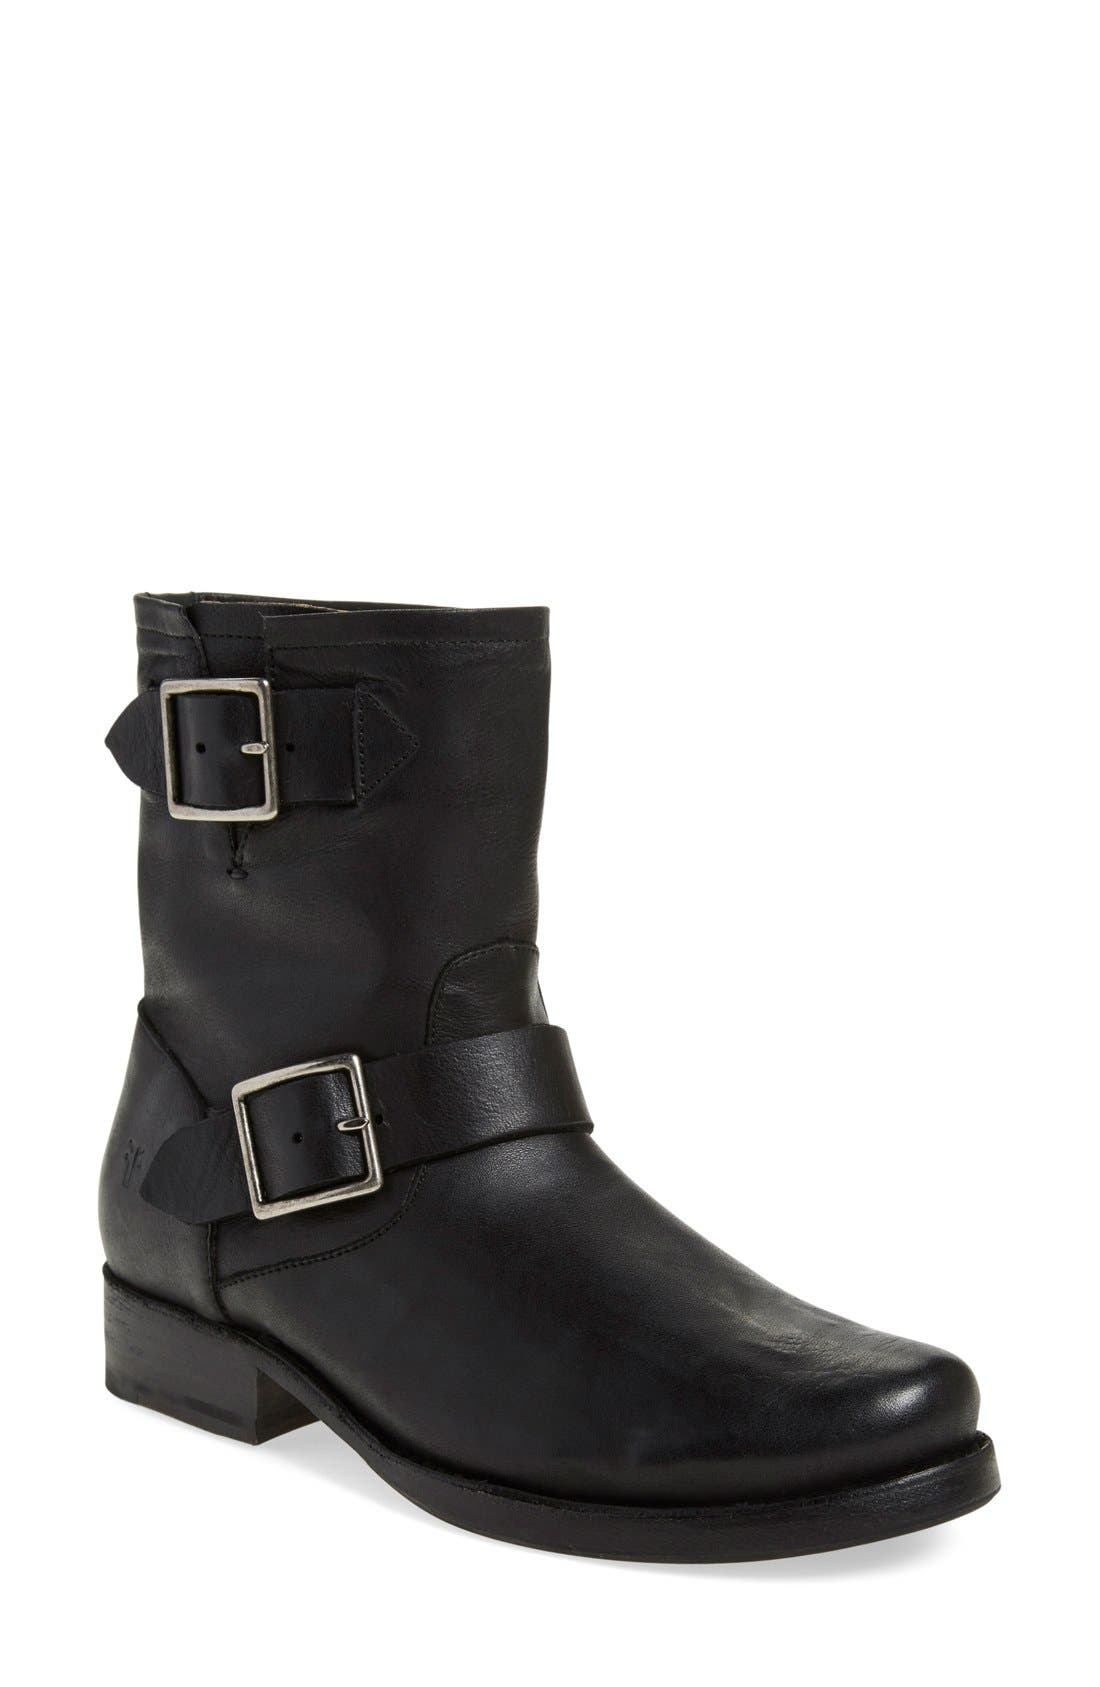 'Vicky Engineer' Boot,                         Main,                         color, Black Leather